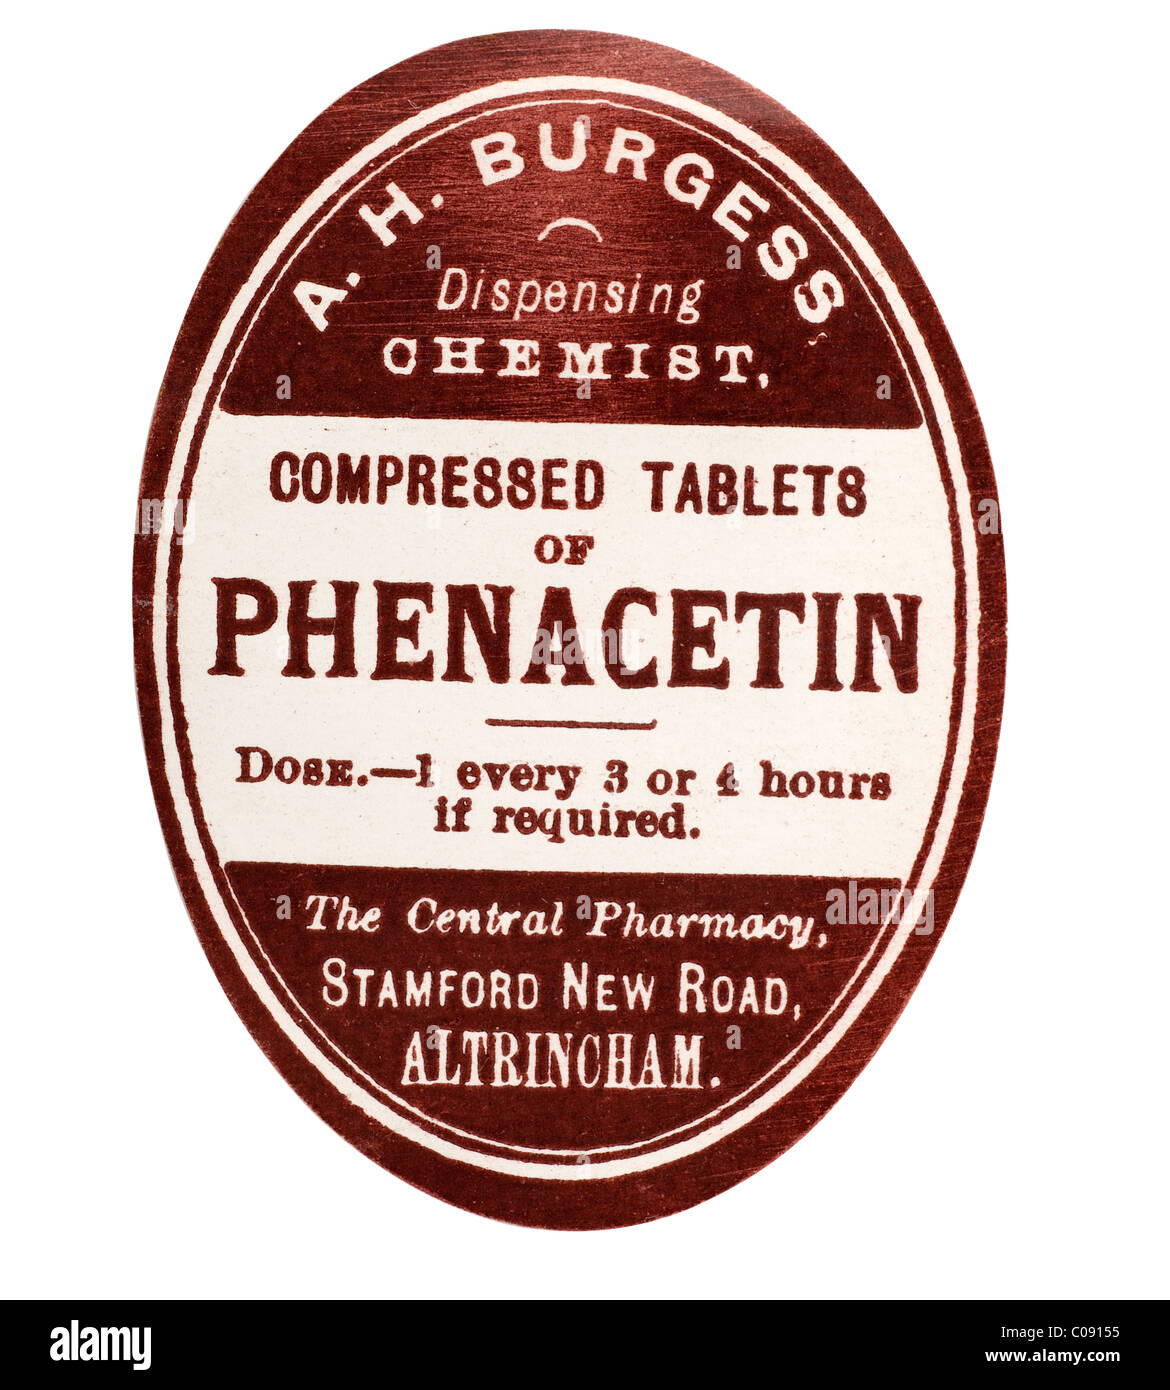 Old vintage chemist label for Phenacetin from A H Burgess of Altrincham. EDITORIAL ONLY - Stock Image